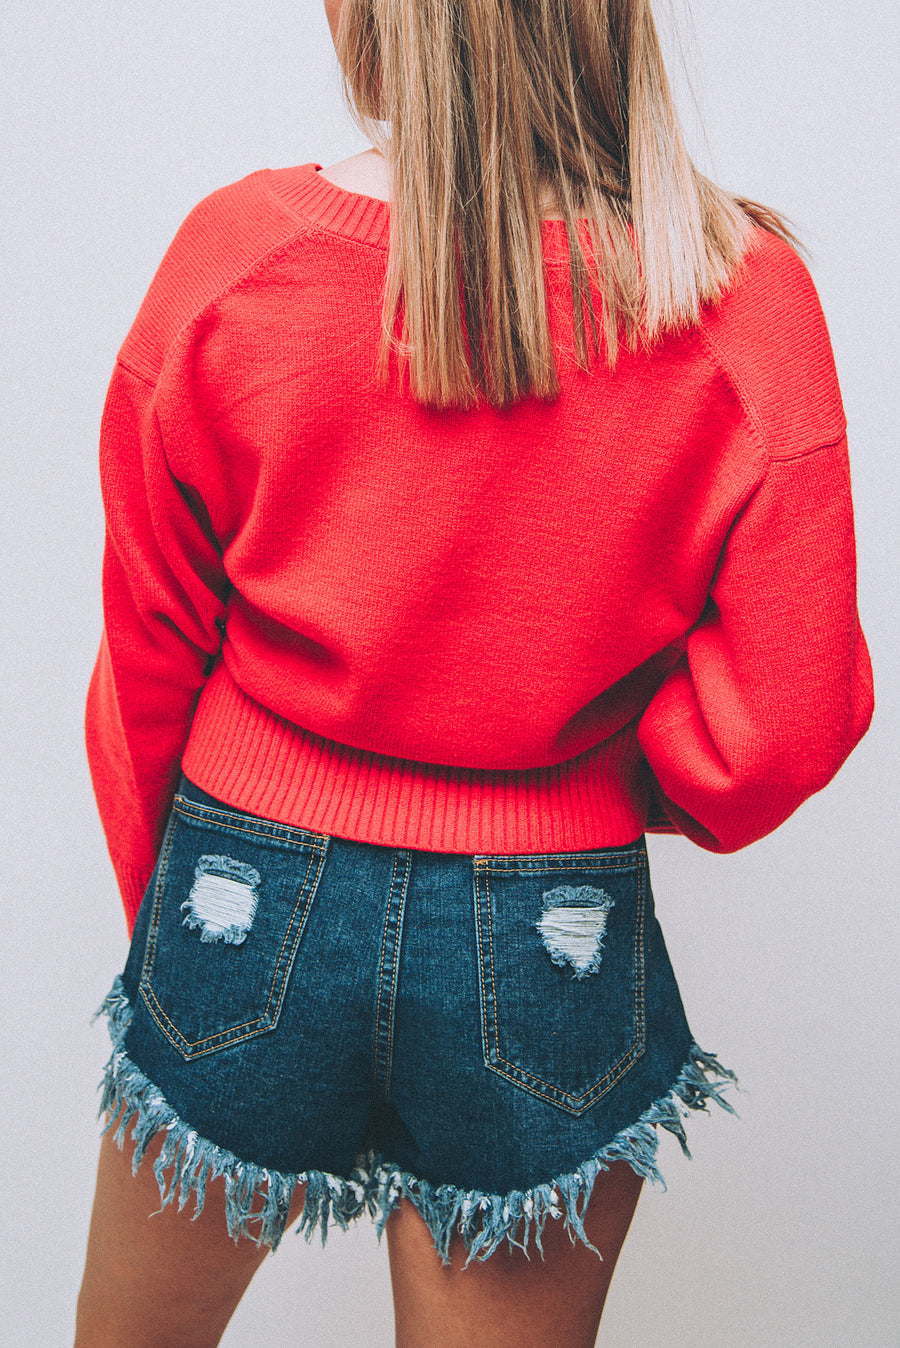 AMUSE SOCIETY: KERI KNIT SWEATER